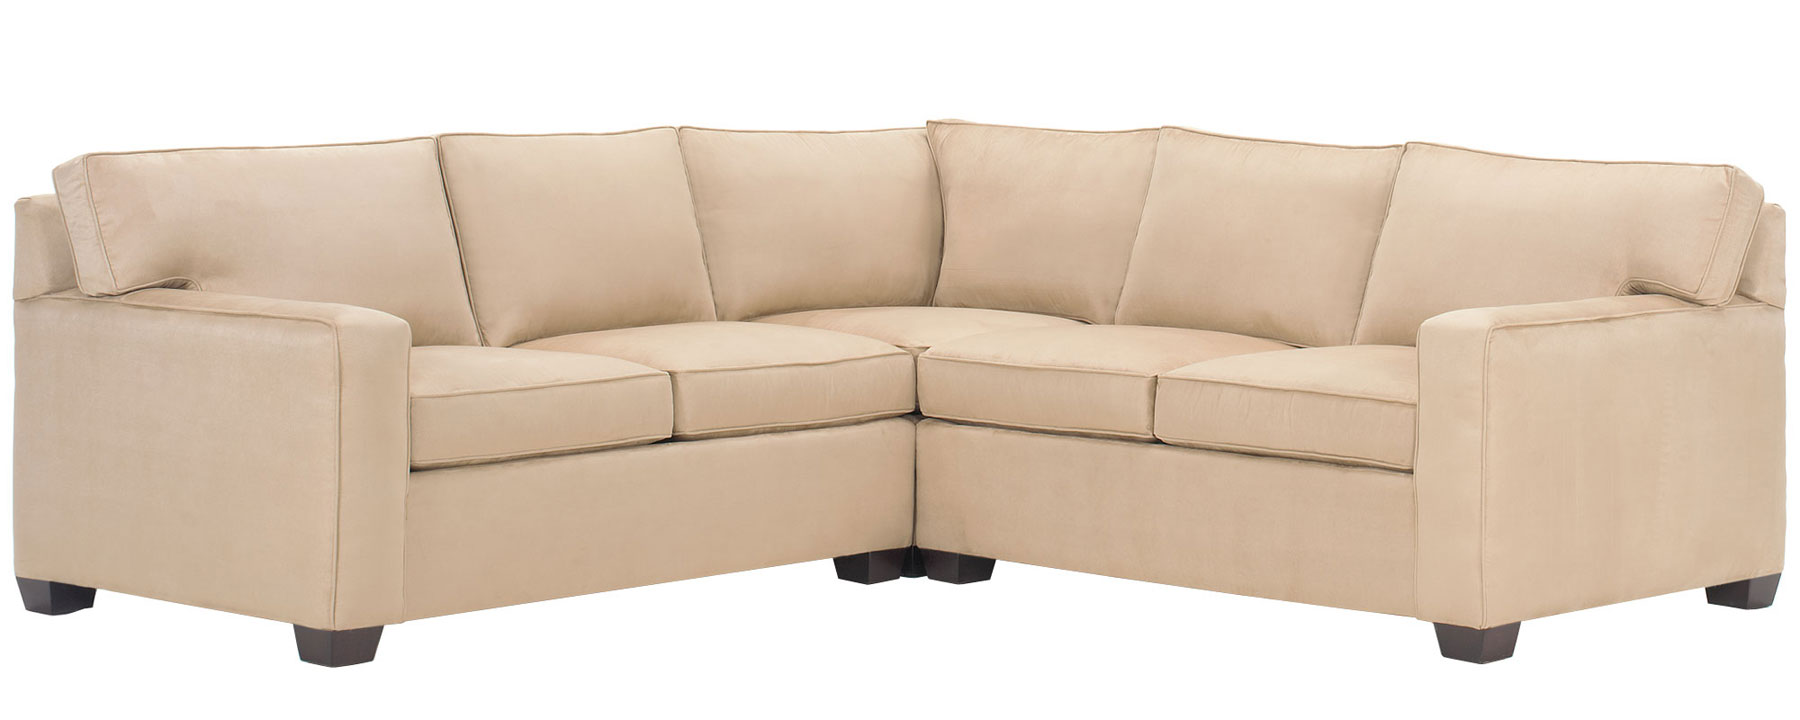 Contemporary sectional sofa furniture like axis for Build your own modular sectional sofa